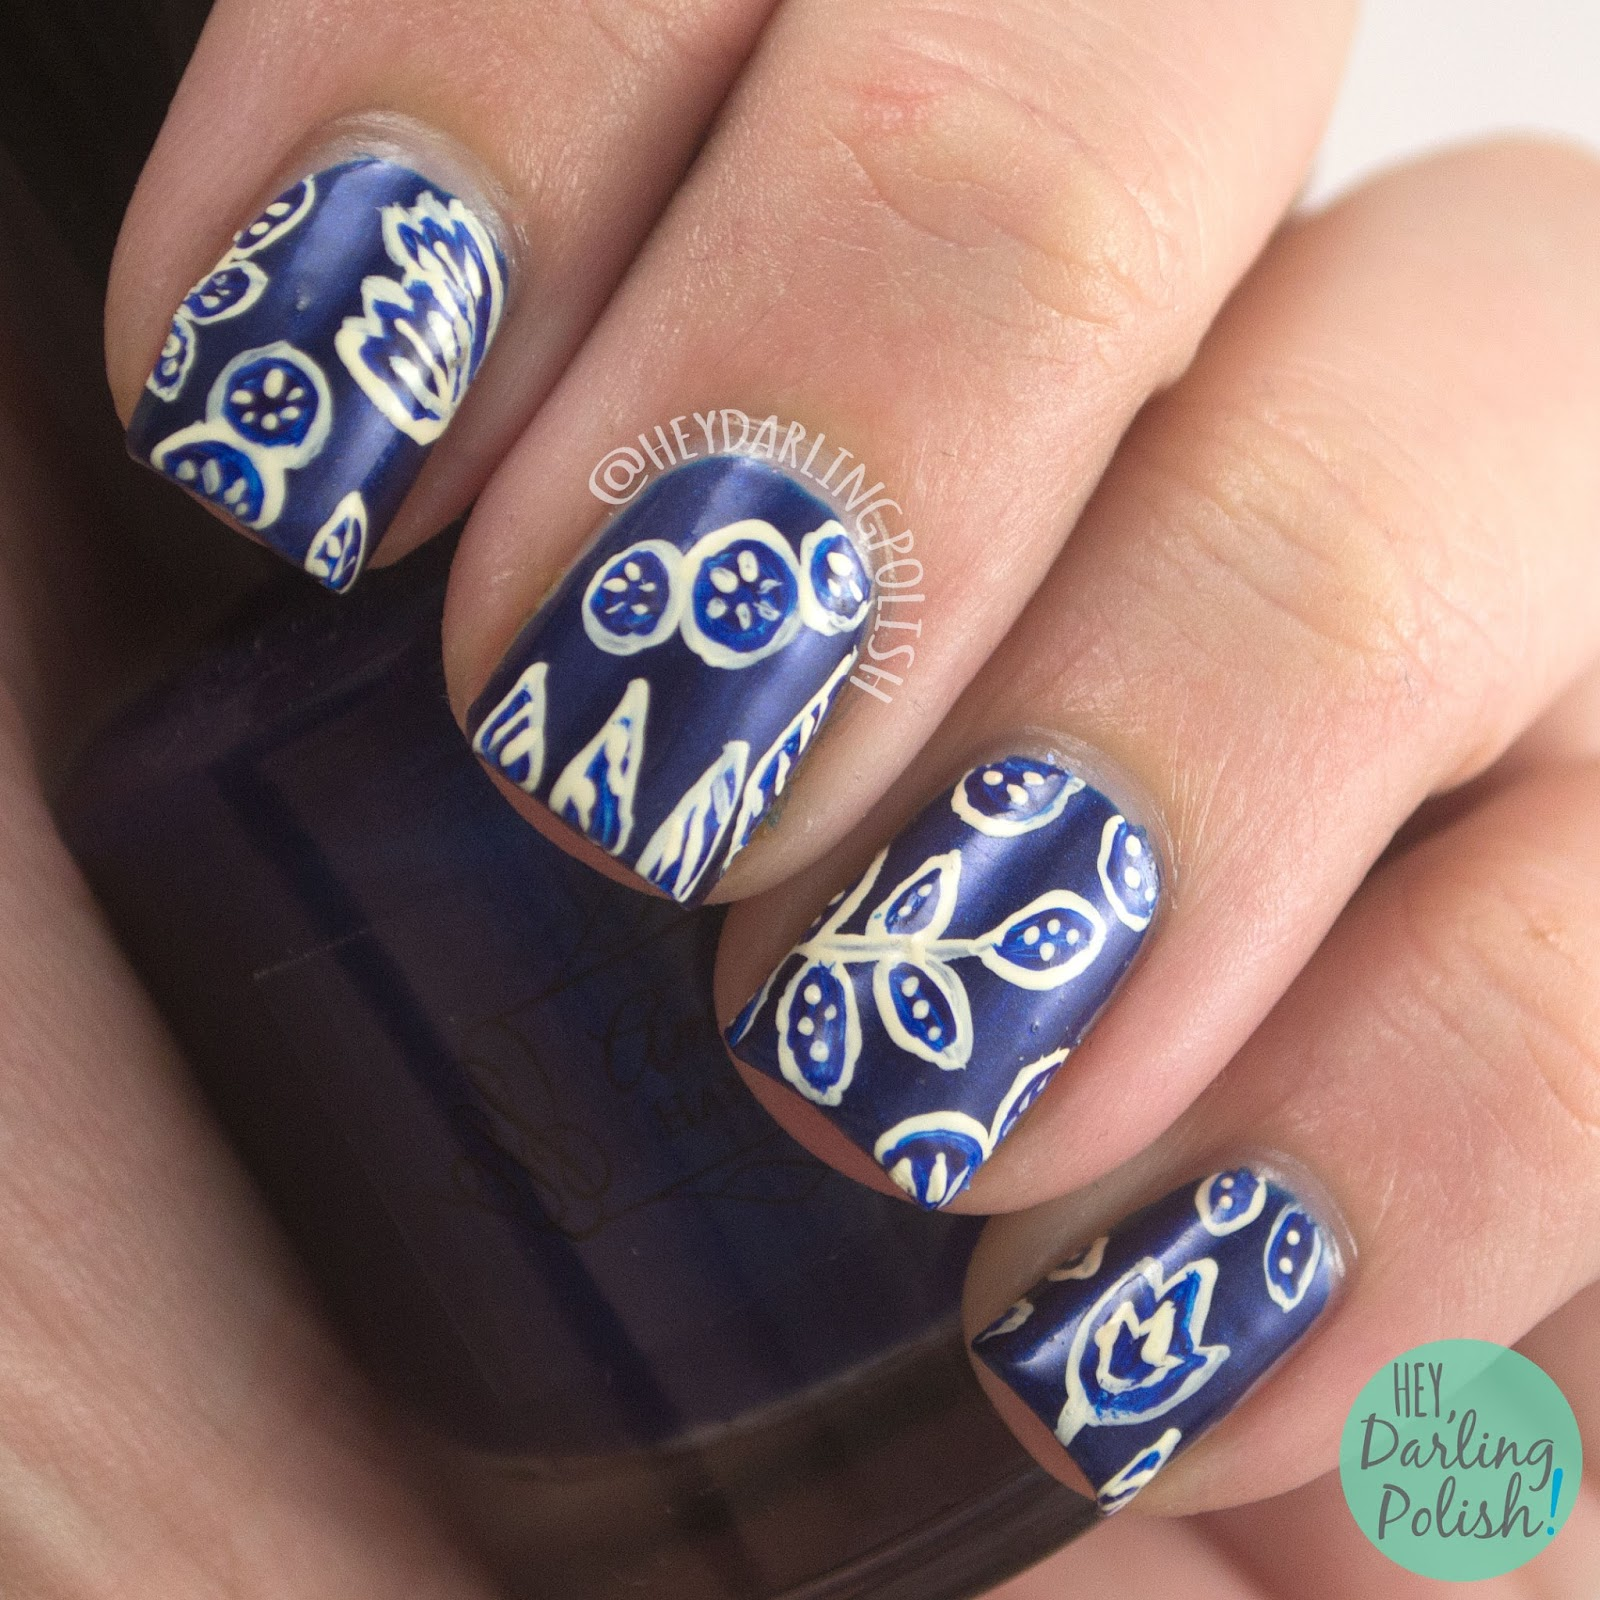 nails, nail art, nail polish, blue, print, hey darling polish, floral, flowers, 31 day challenge, 31dc2014